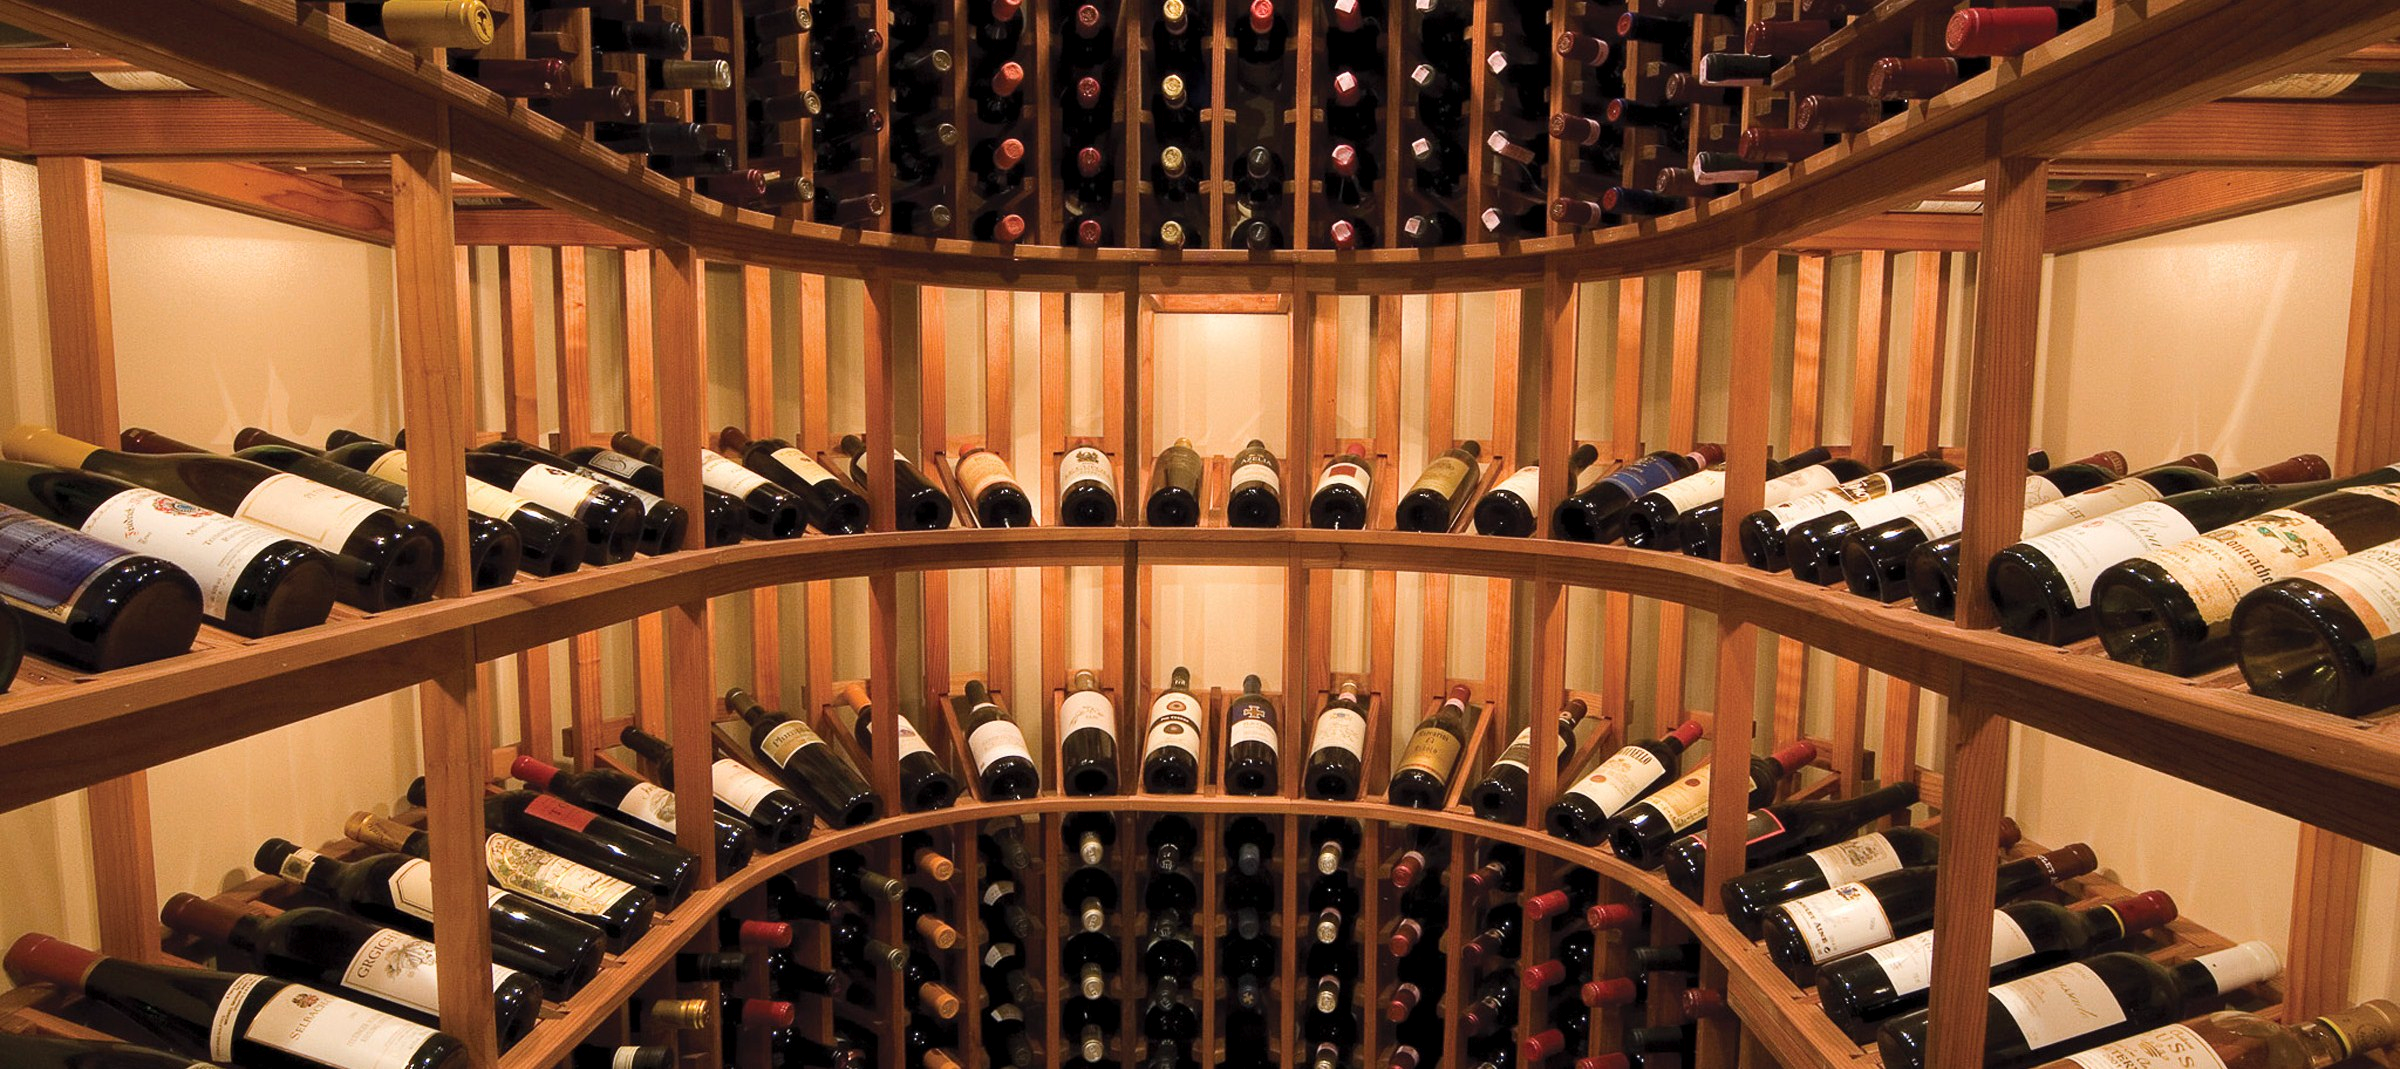 Wine Cellar Refrigeration Scottsdale AZ